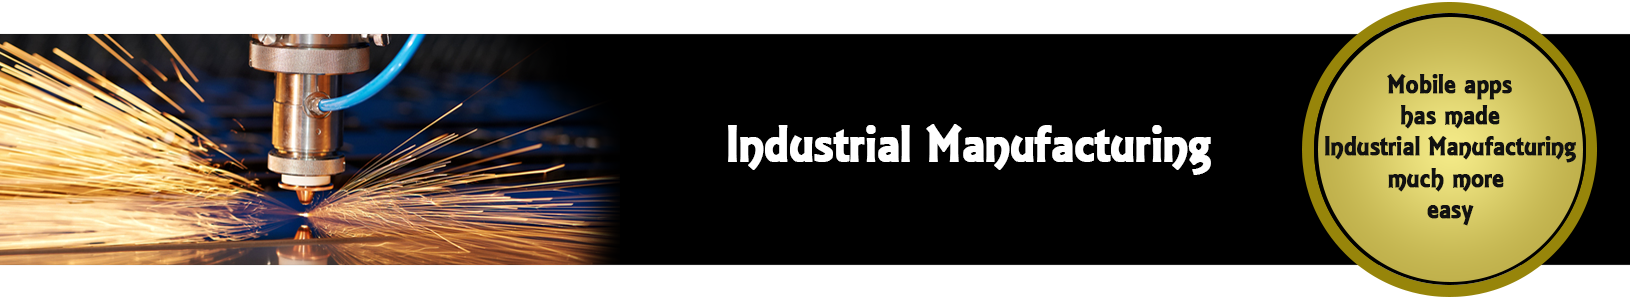 industrial-manufacturing